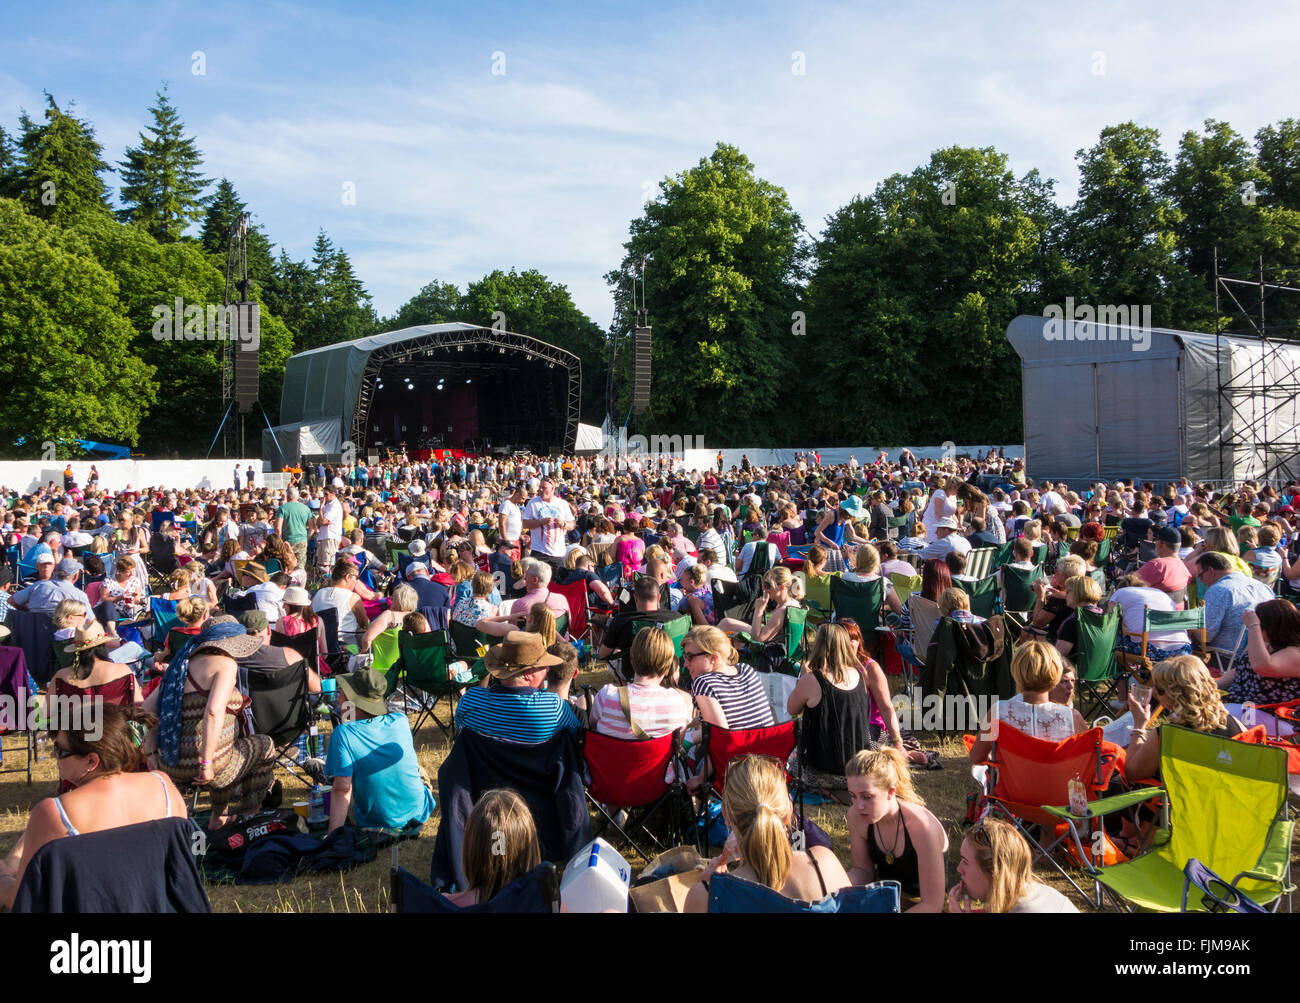 Thetford Forest Concert - Stock Image